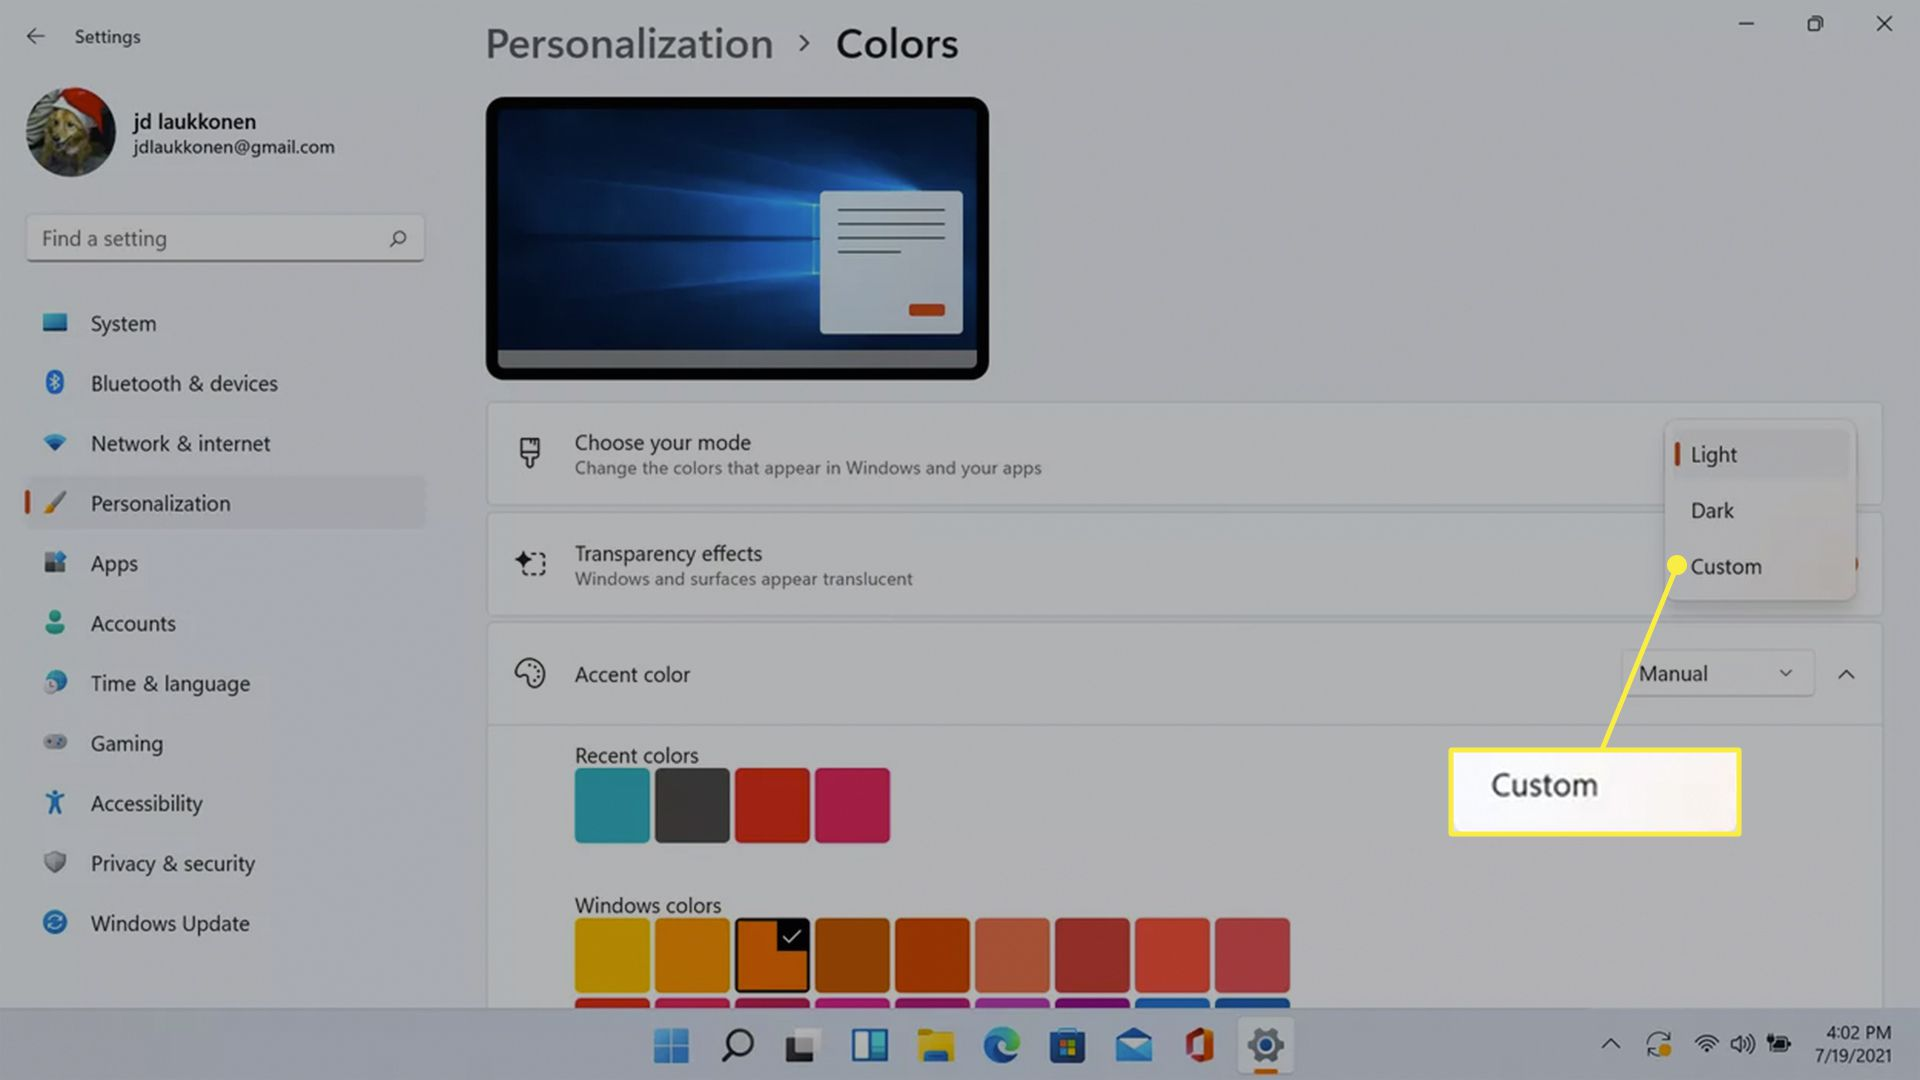 Custom highlighted in the Windows 11 colors choose your mode menu.